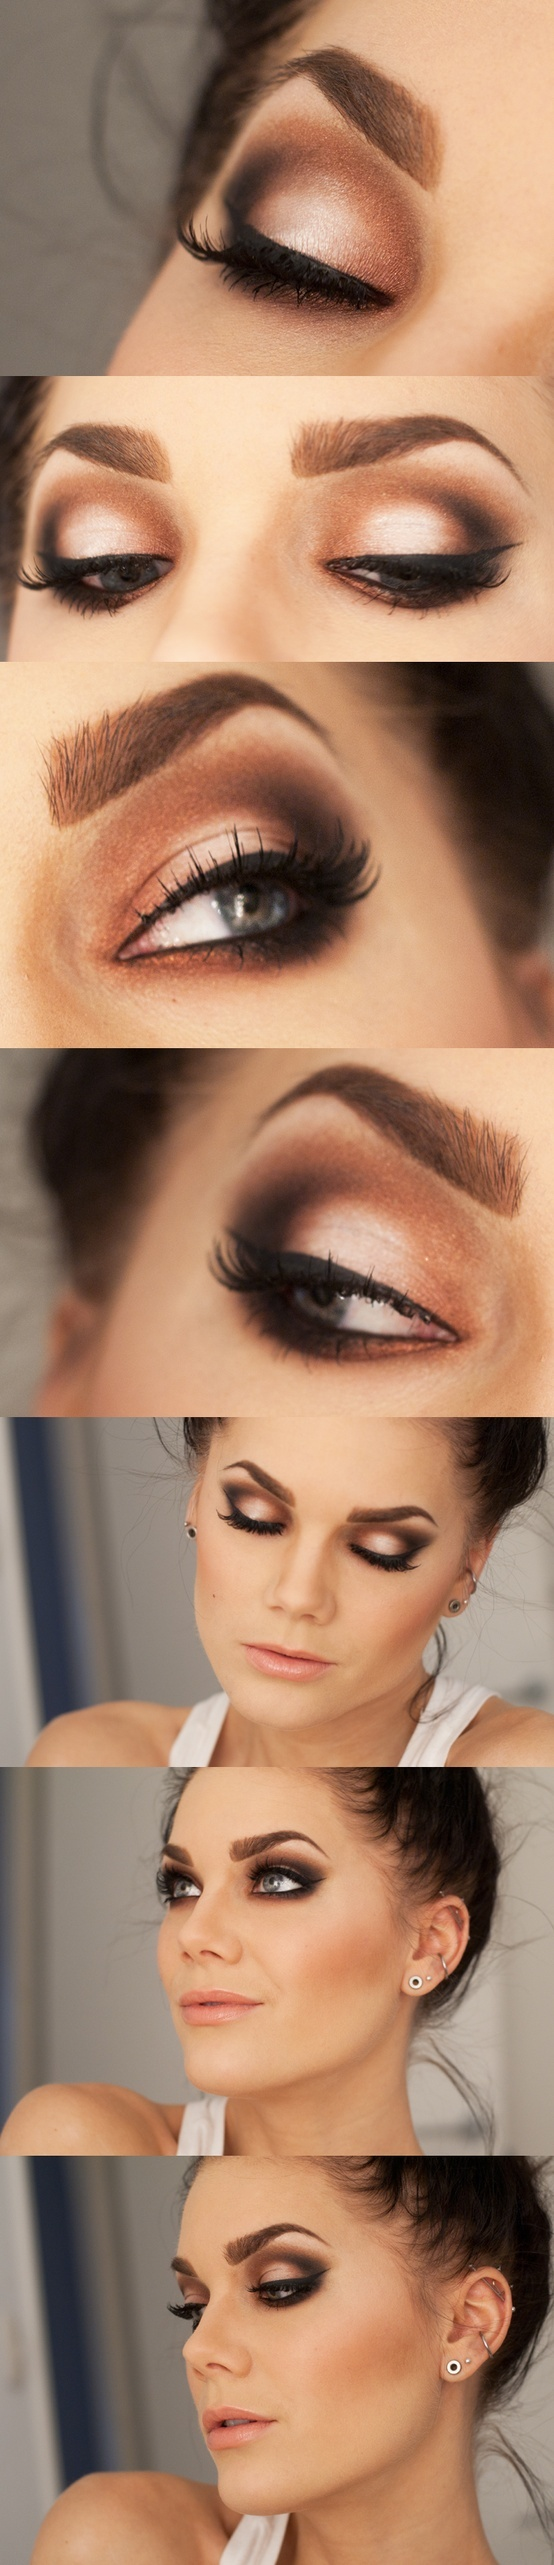 smokey-eyes-naturel-marron-brown-makeup-eye